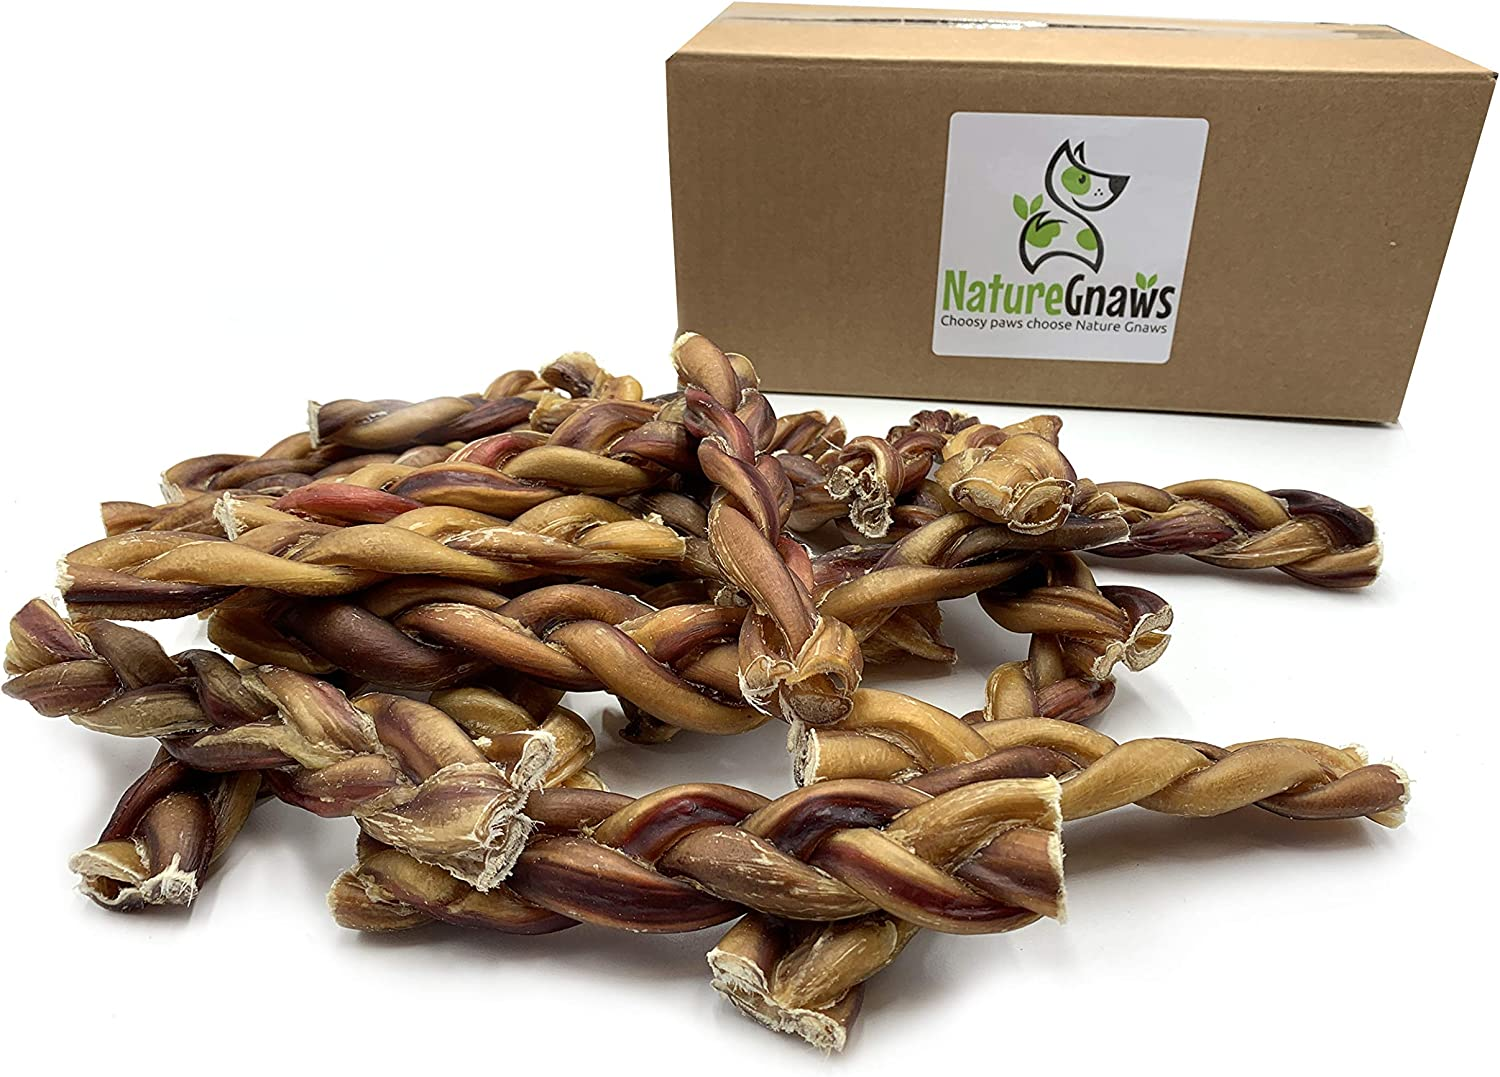 Nature Gnaws Braided Bully Sticks 5-6 inch – 100 Natural Grass-Fed Beef Dog Chews